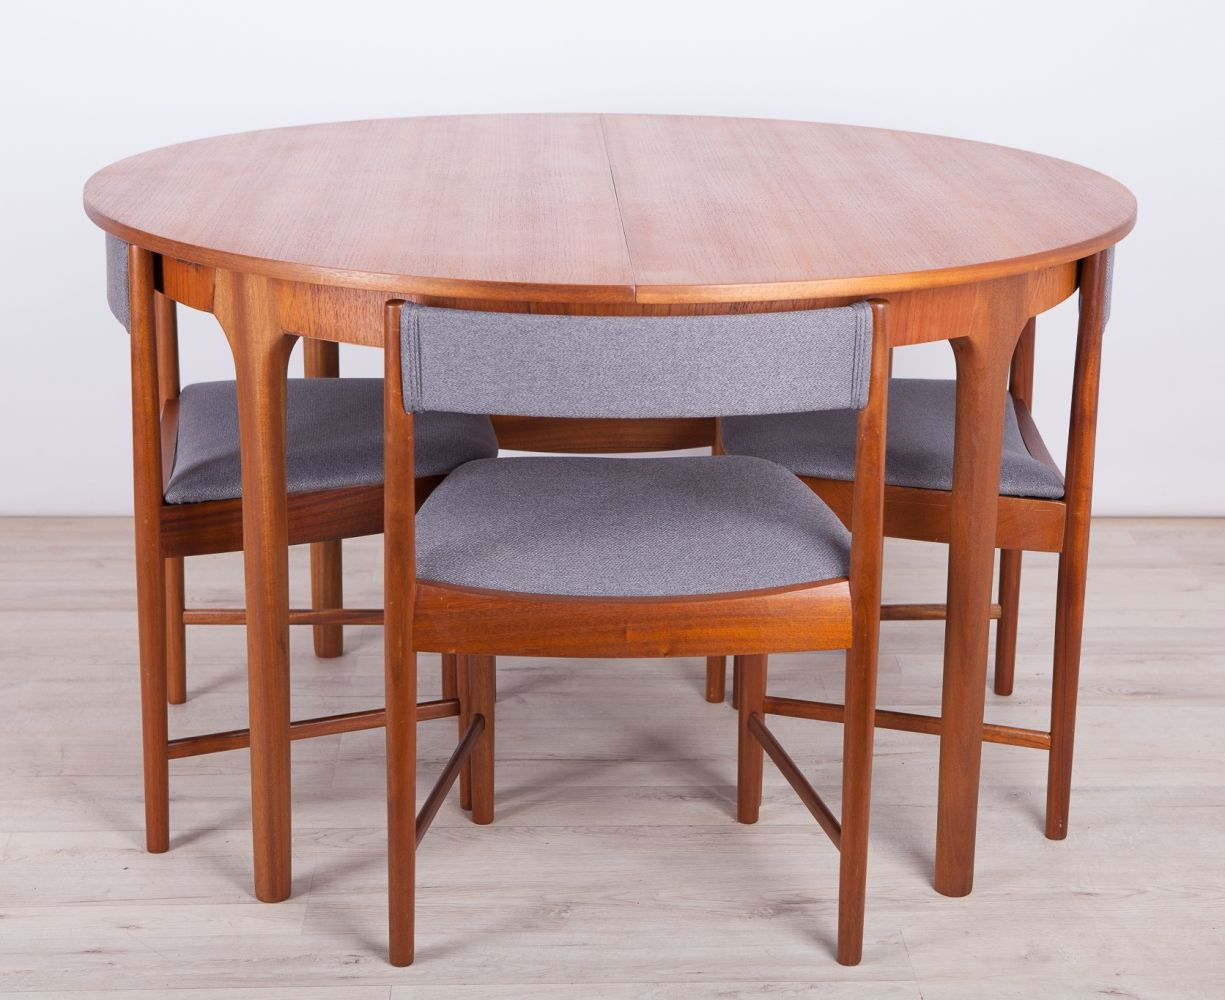 Pin By Krm On Dining Rooms In 2020 Teak Dining Table Dining